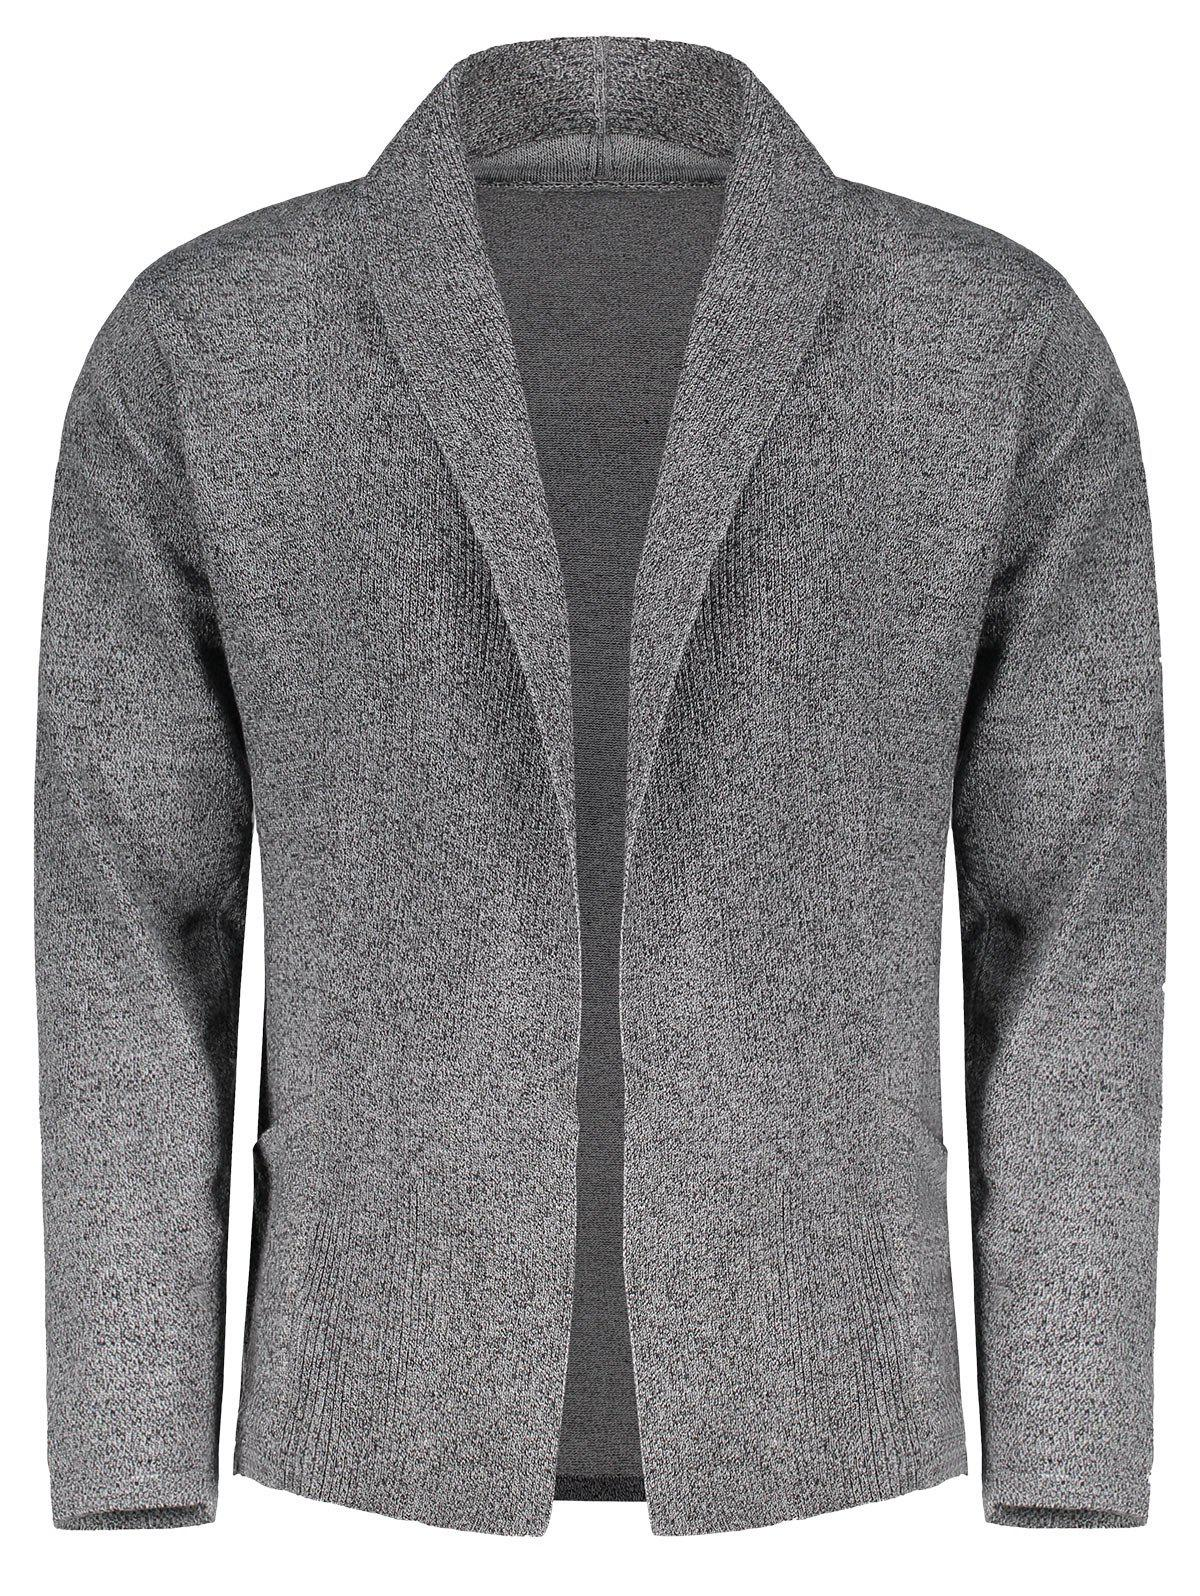 2018 Shawl Collar Open Front Mens Cardigan FEATHER GRAY M In ...